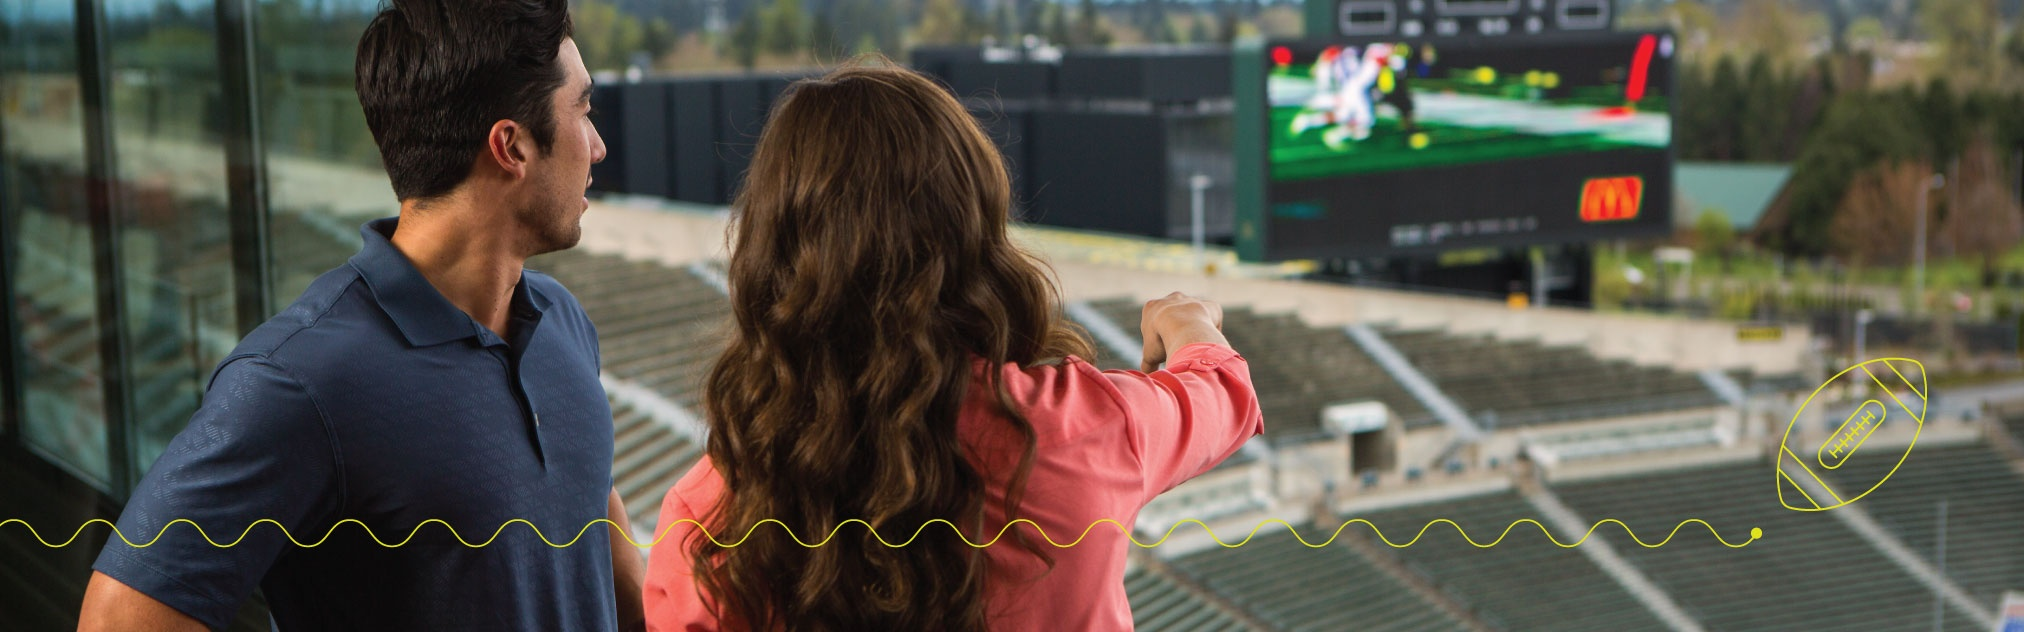 Two young people look out over a football field